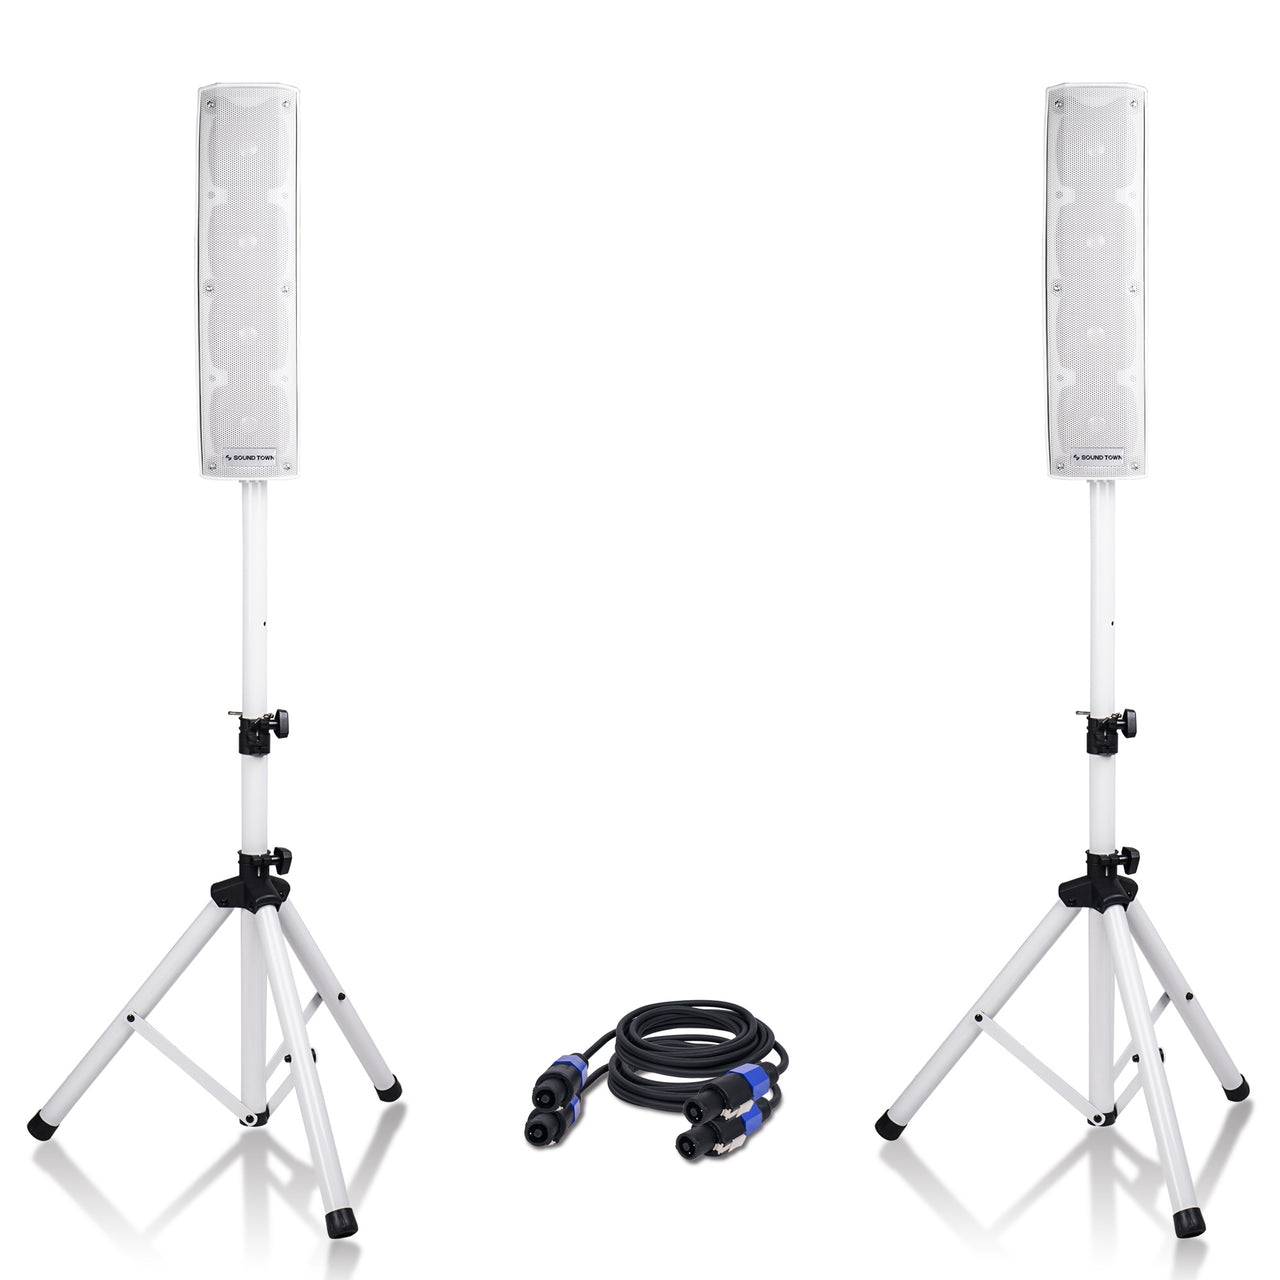 "Sound Town CARPO-V4W CARPO Series 500W Passive Mini Line Array Column Speaker System with Two 4 X 4"" Column Speakers, Stands and 9-Feet Speakon Cables, White"